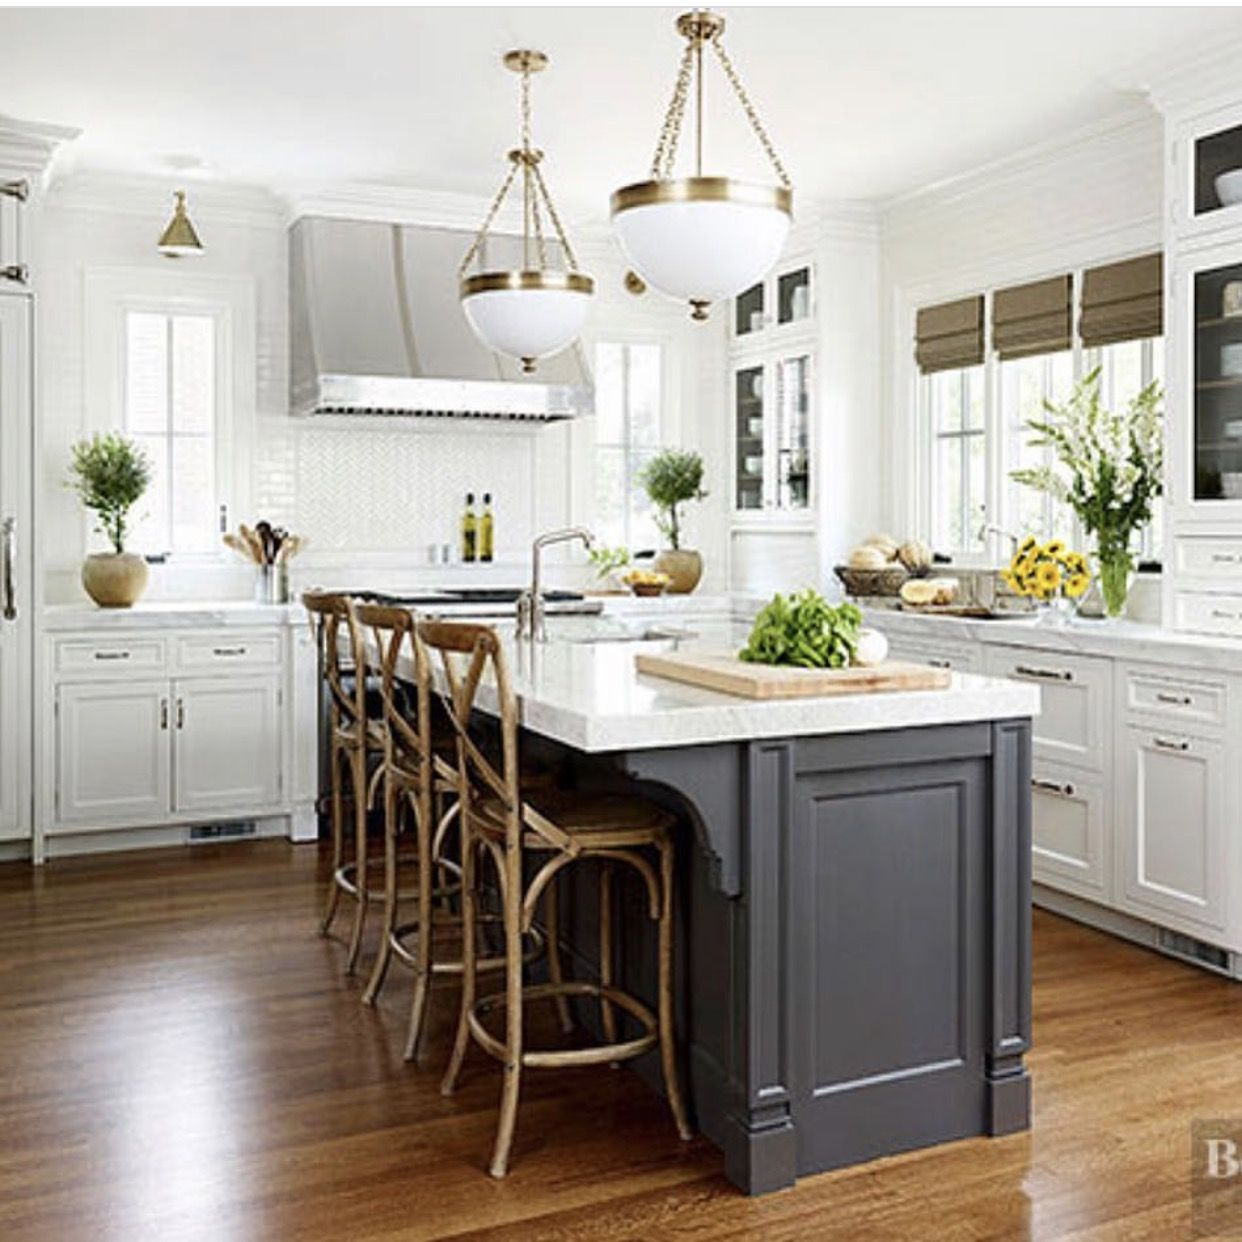 Gorgeous White Kitchen With Dark Island Better Homes And Gardens Contrasting Kitchen Island Home Kitchens White Kitchen Design